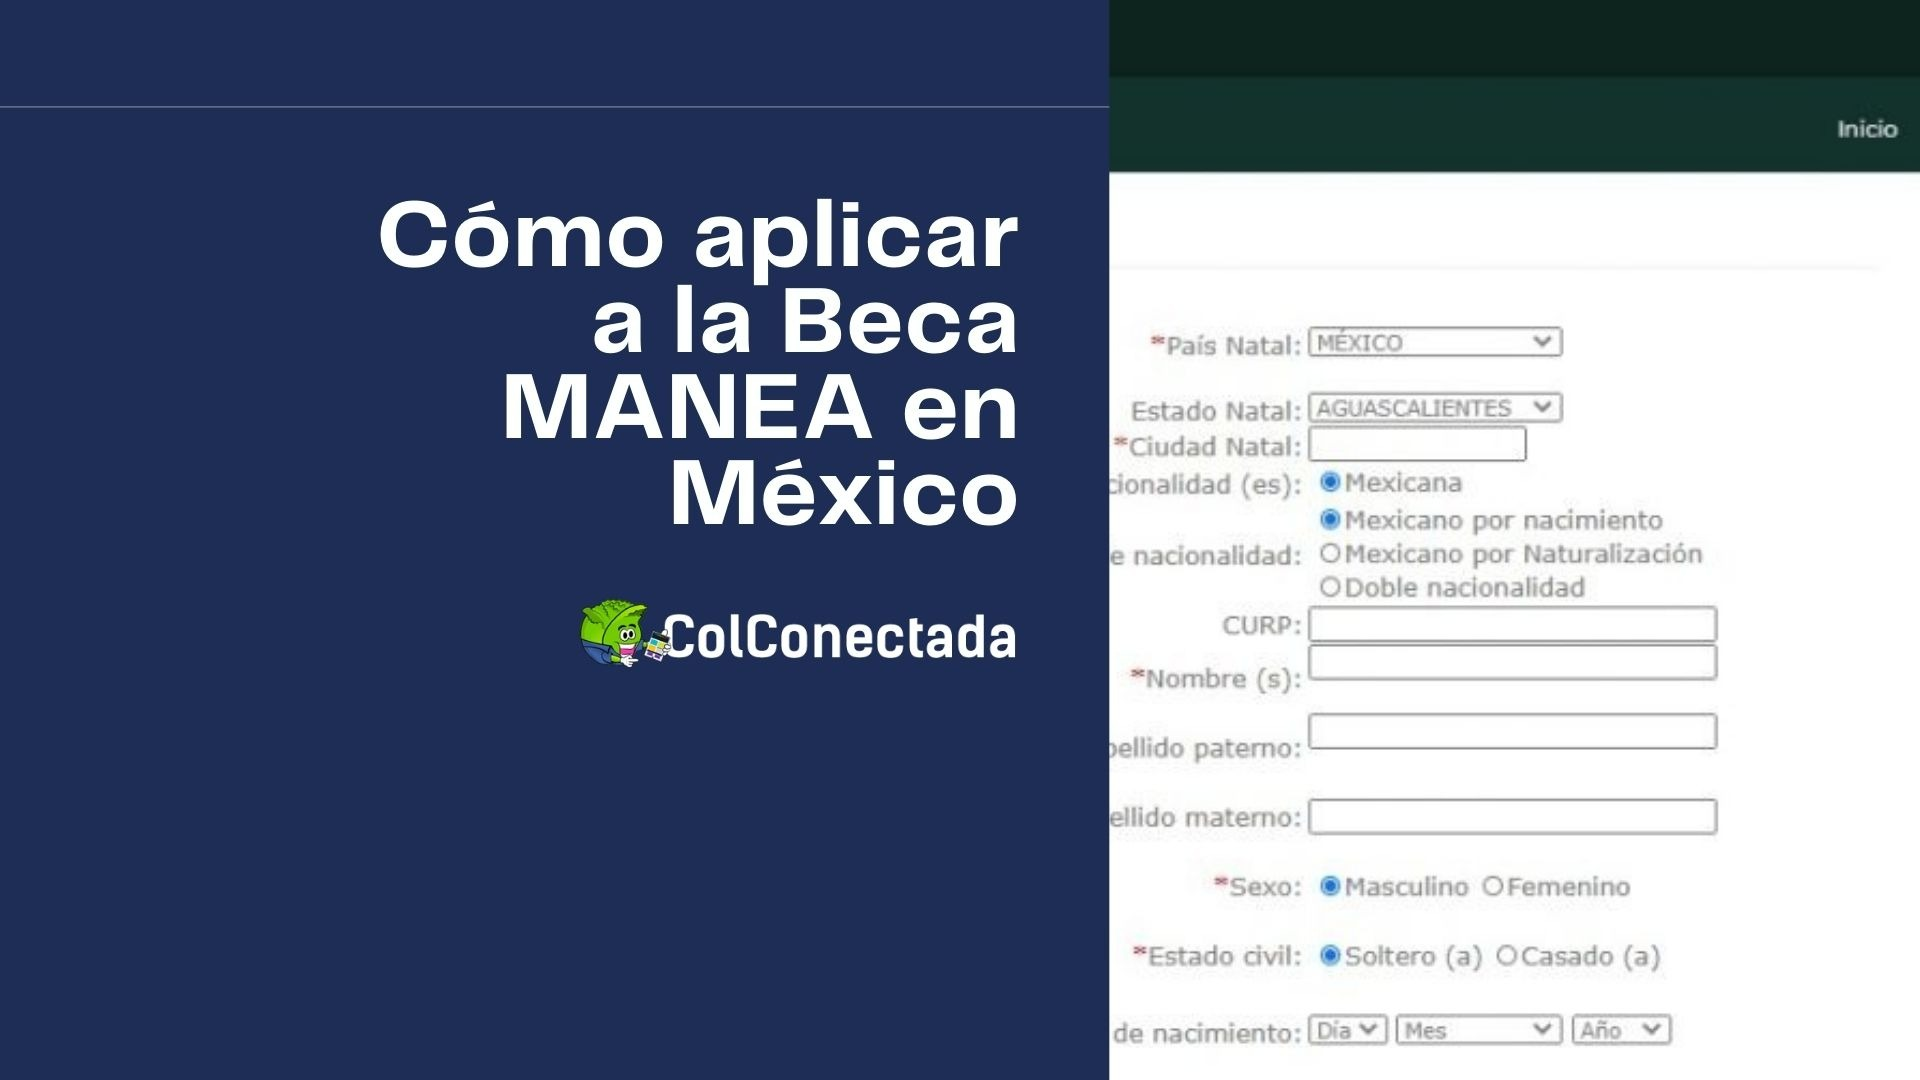 Requisitos para aplicar a la Beca de intercambio MANEA 5